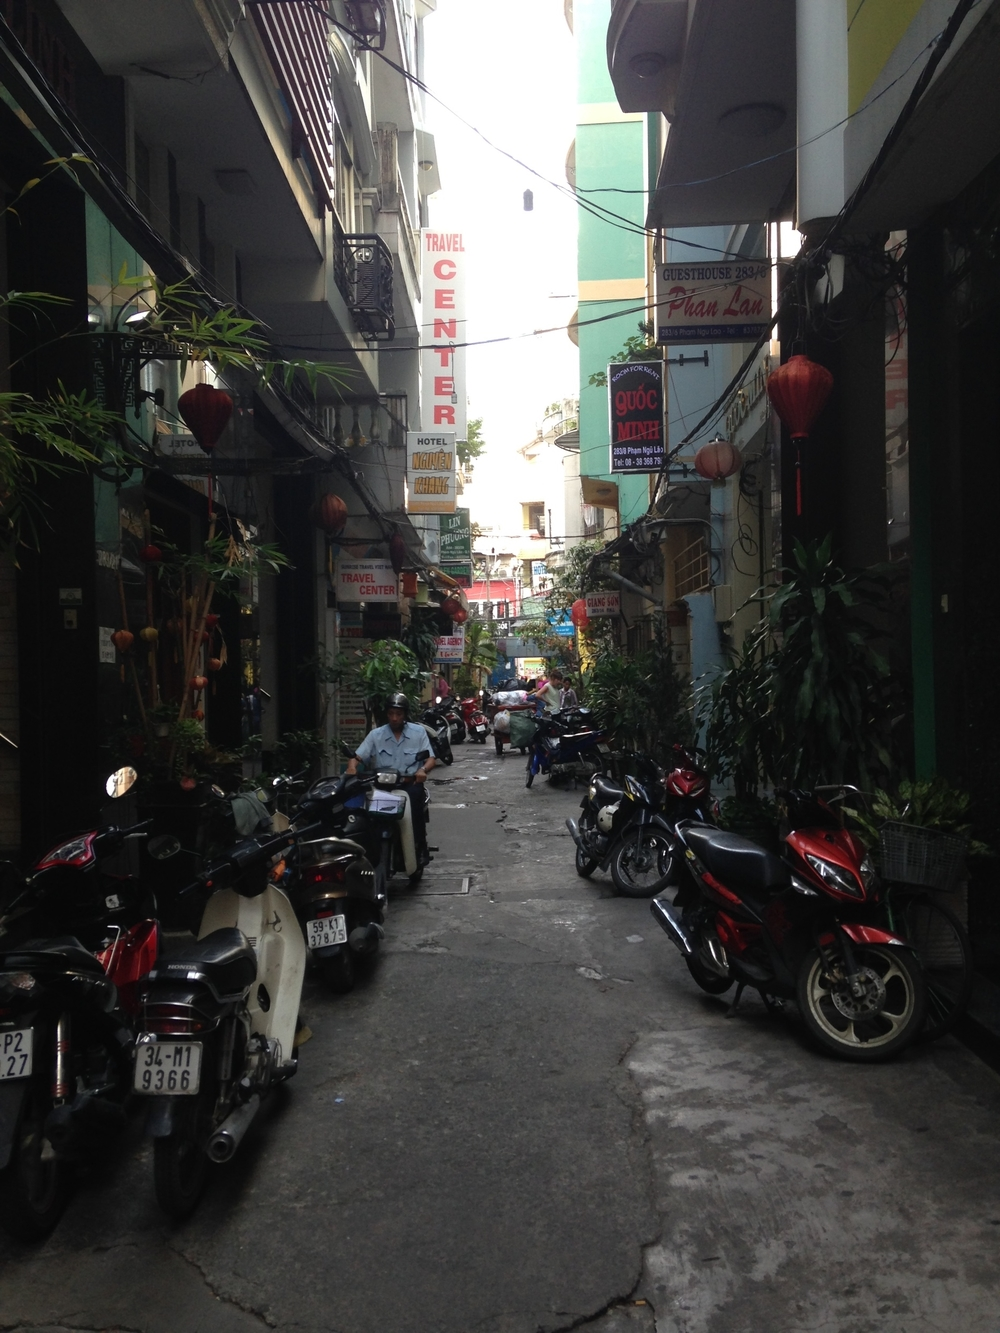 The alley that we were staying in.